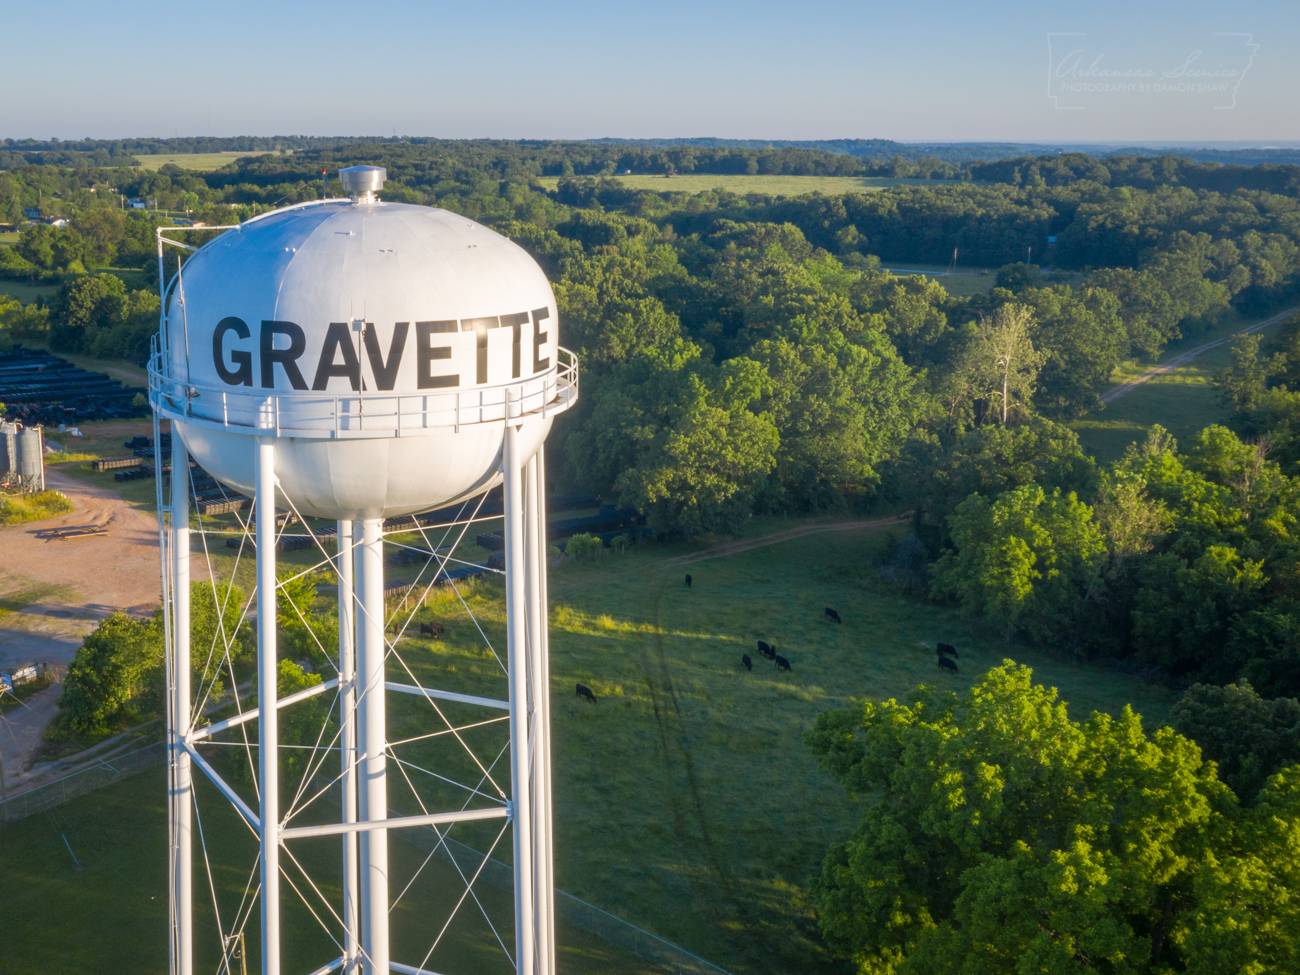 The old water tower just outside of Gravette